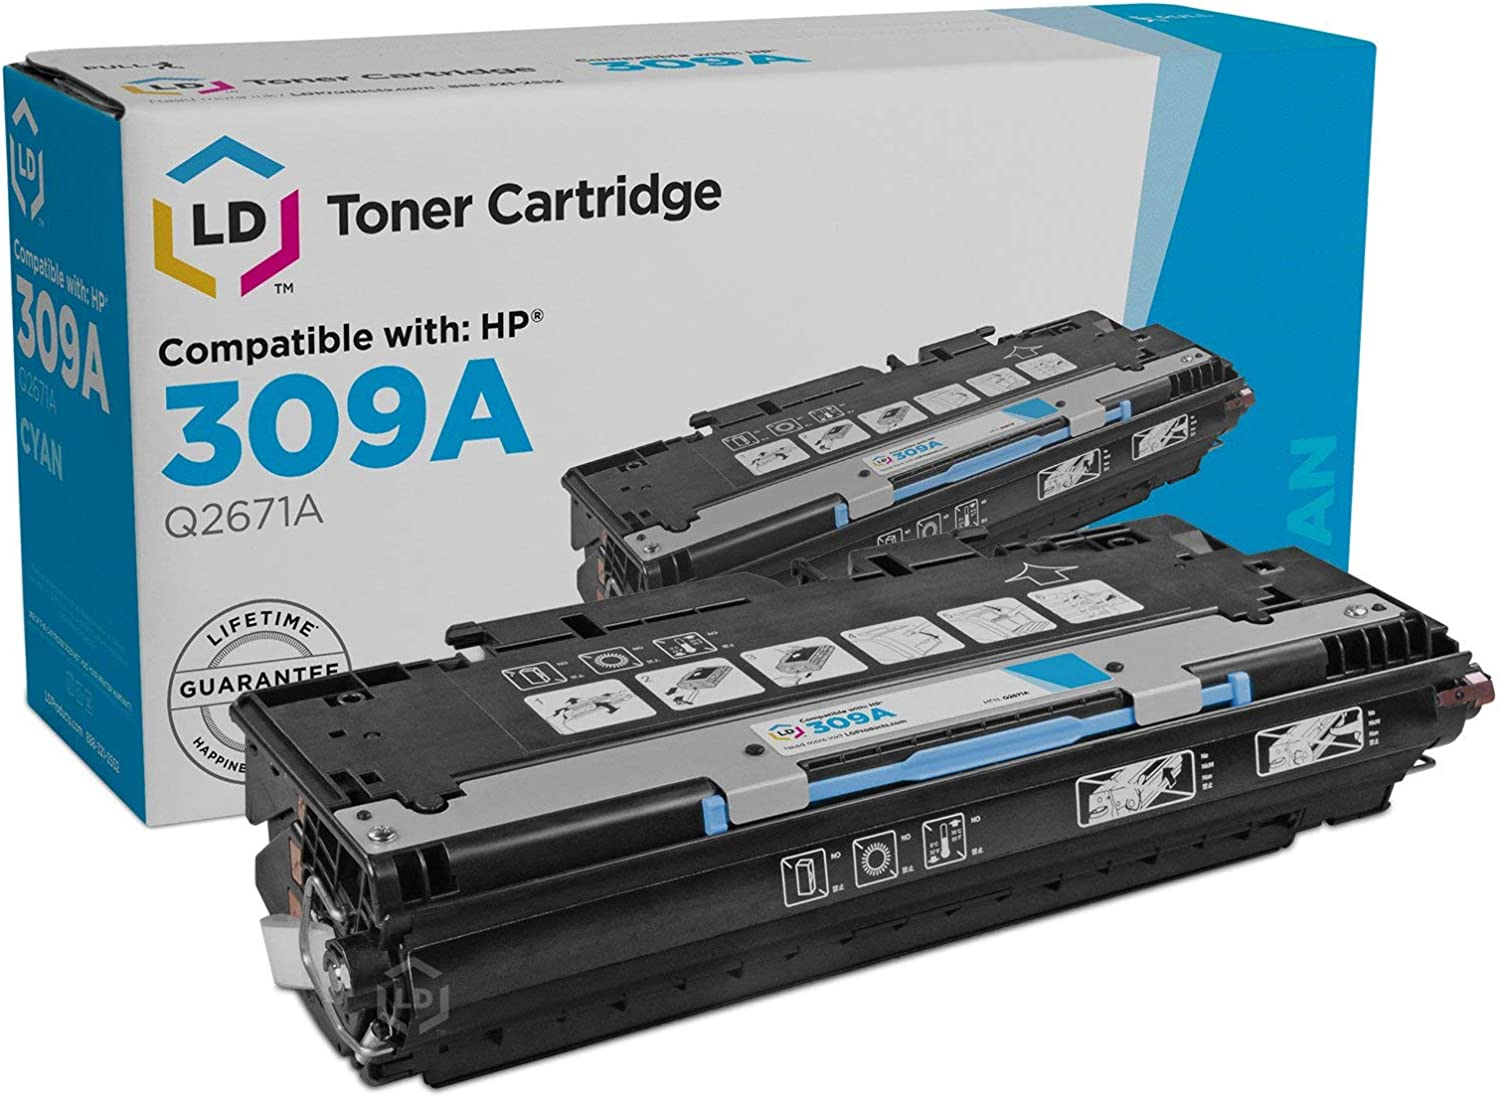 LD Remanufactured Toner Cartridge Replacement for HP 309A Q2671A (Cyan)